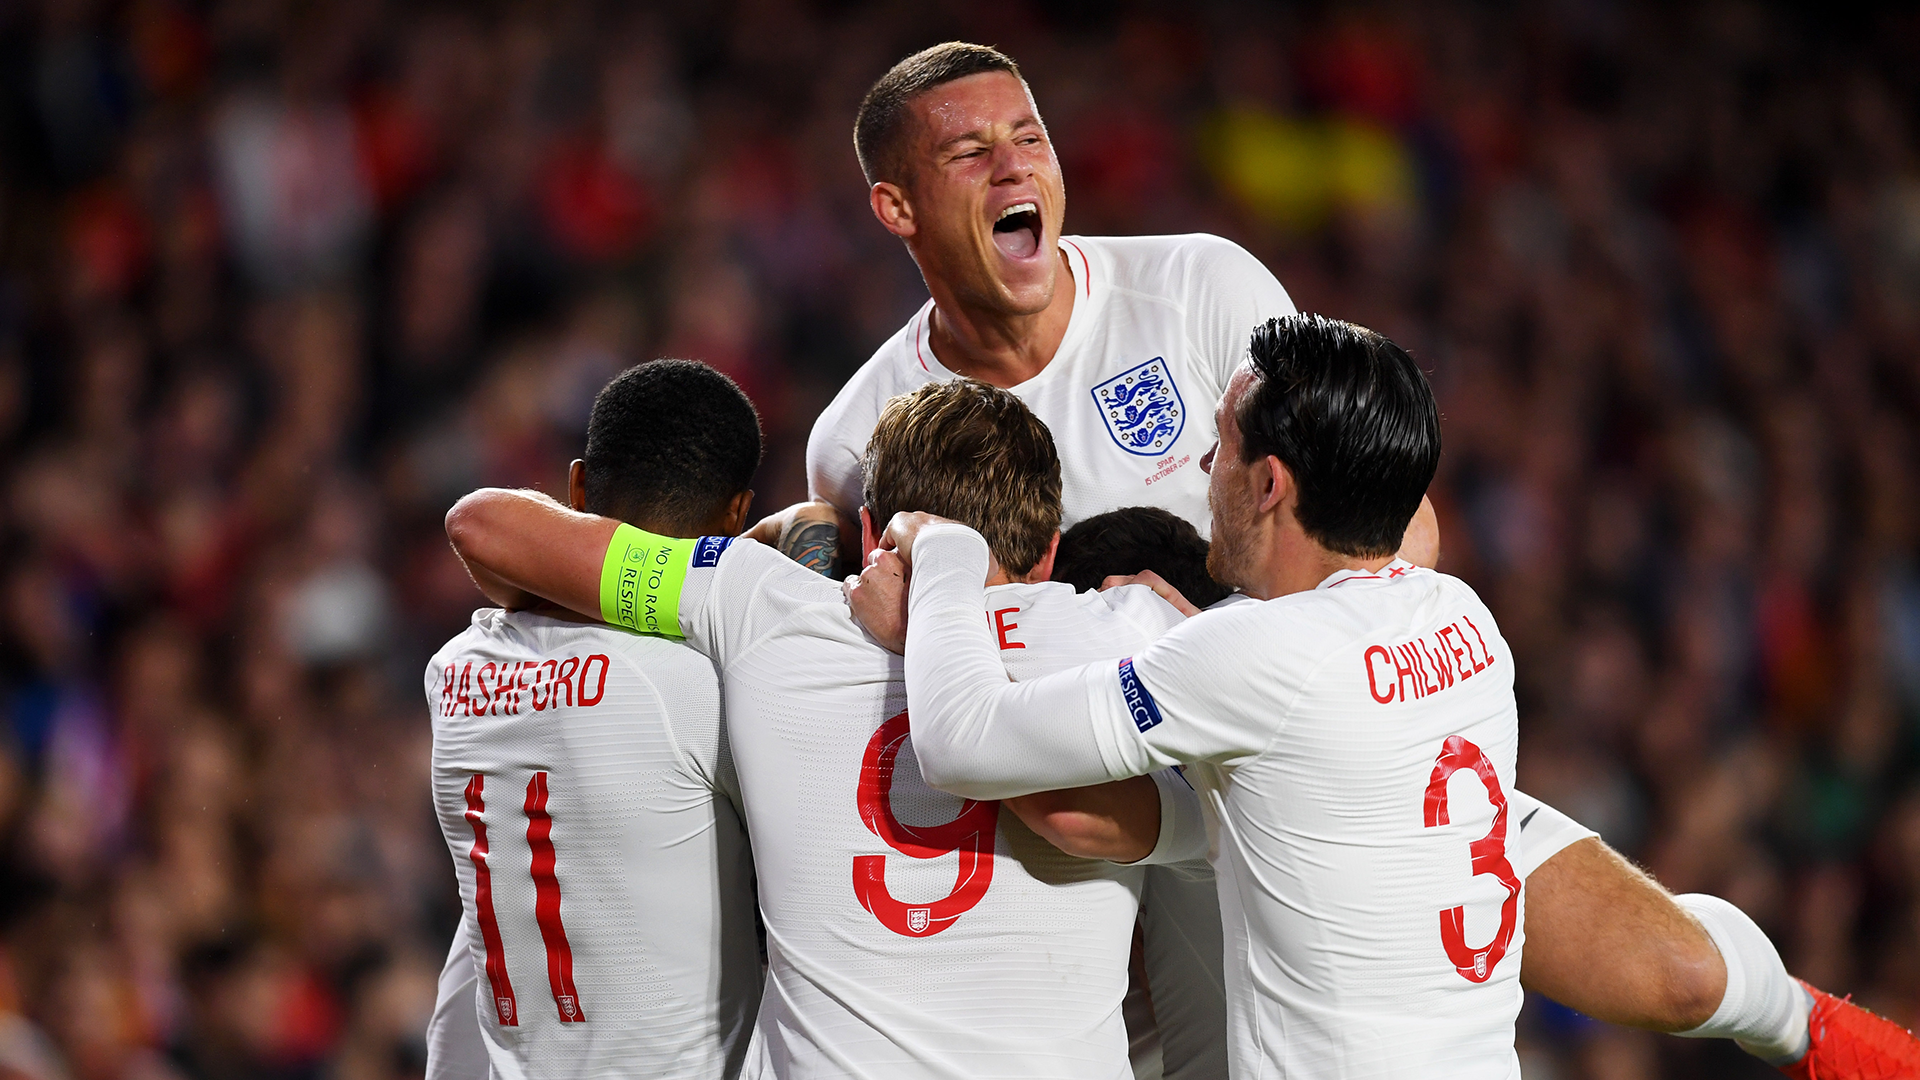 England vs Croatia: Harry Kane responds to Dejan Lovren's taunts